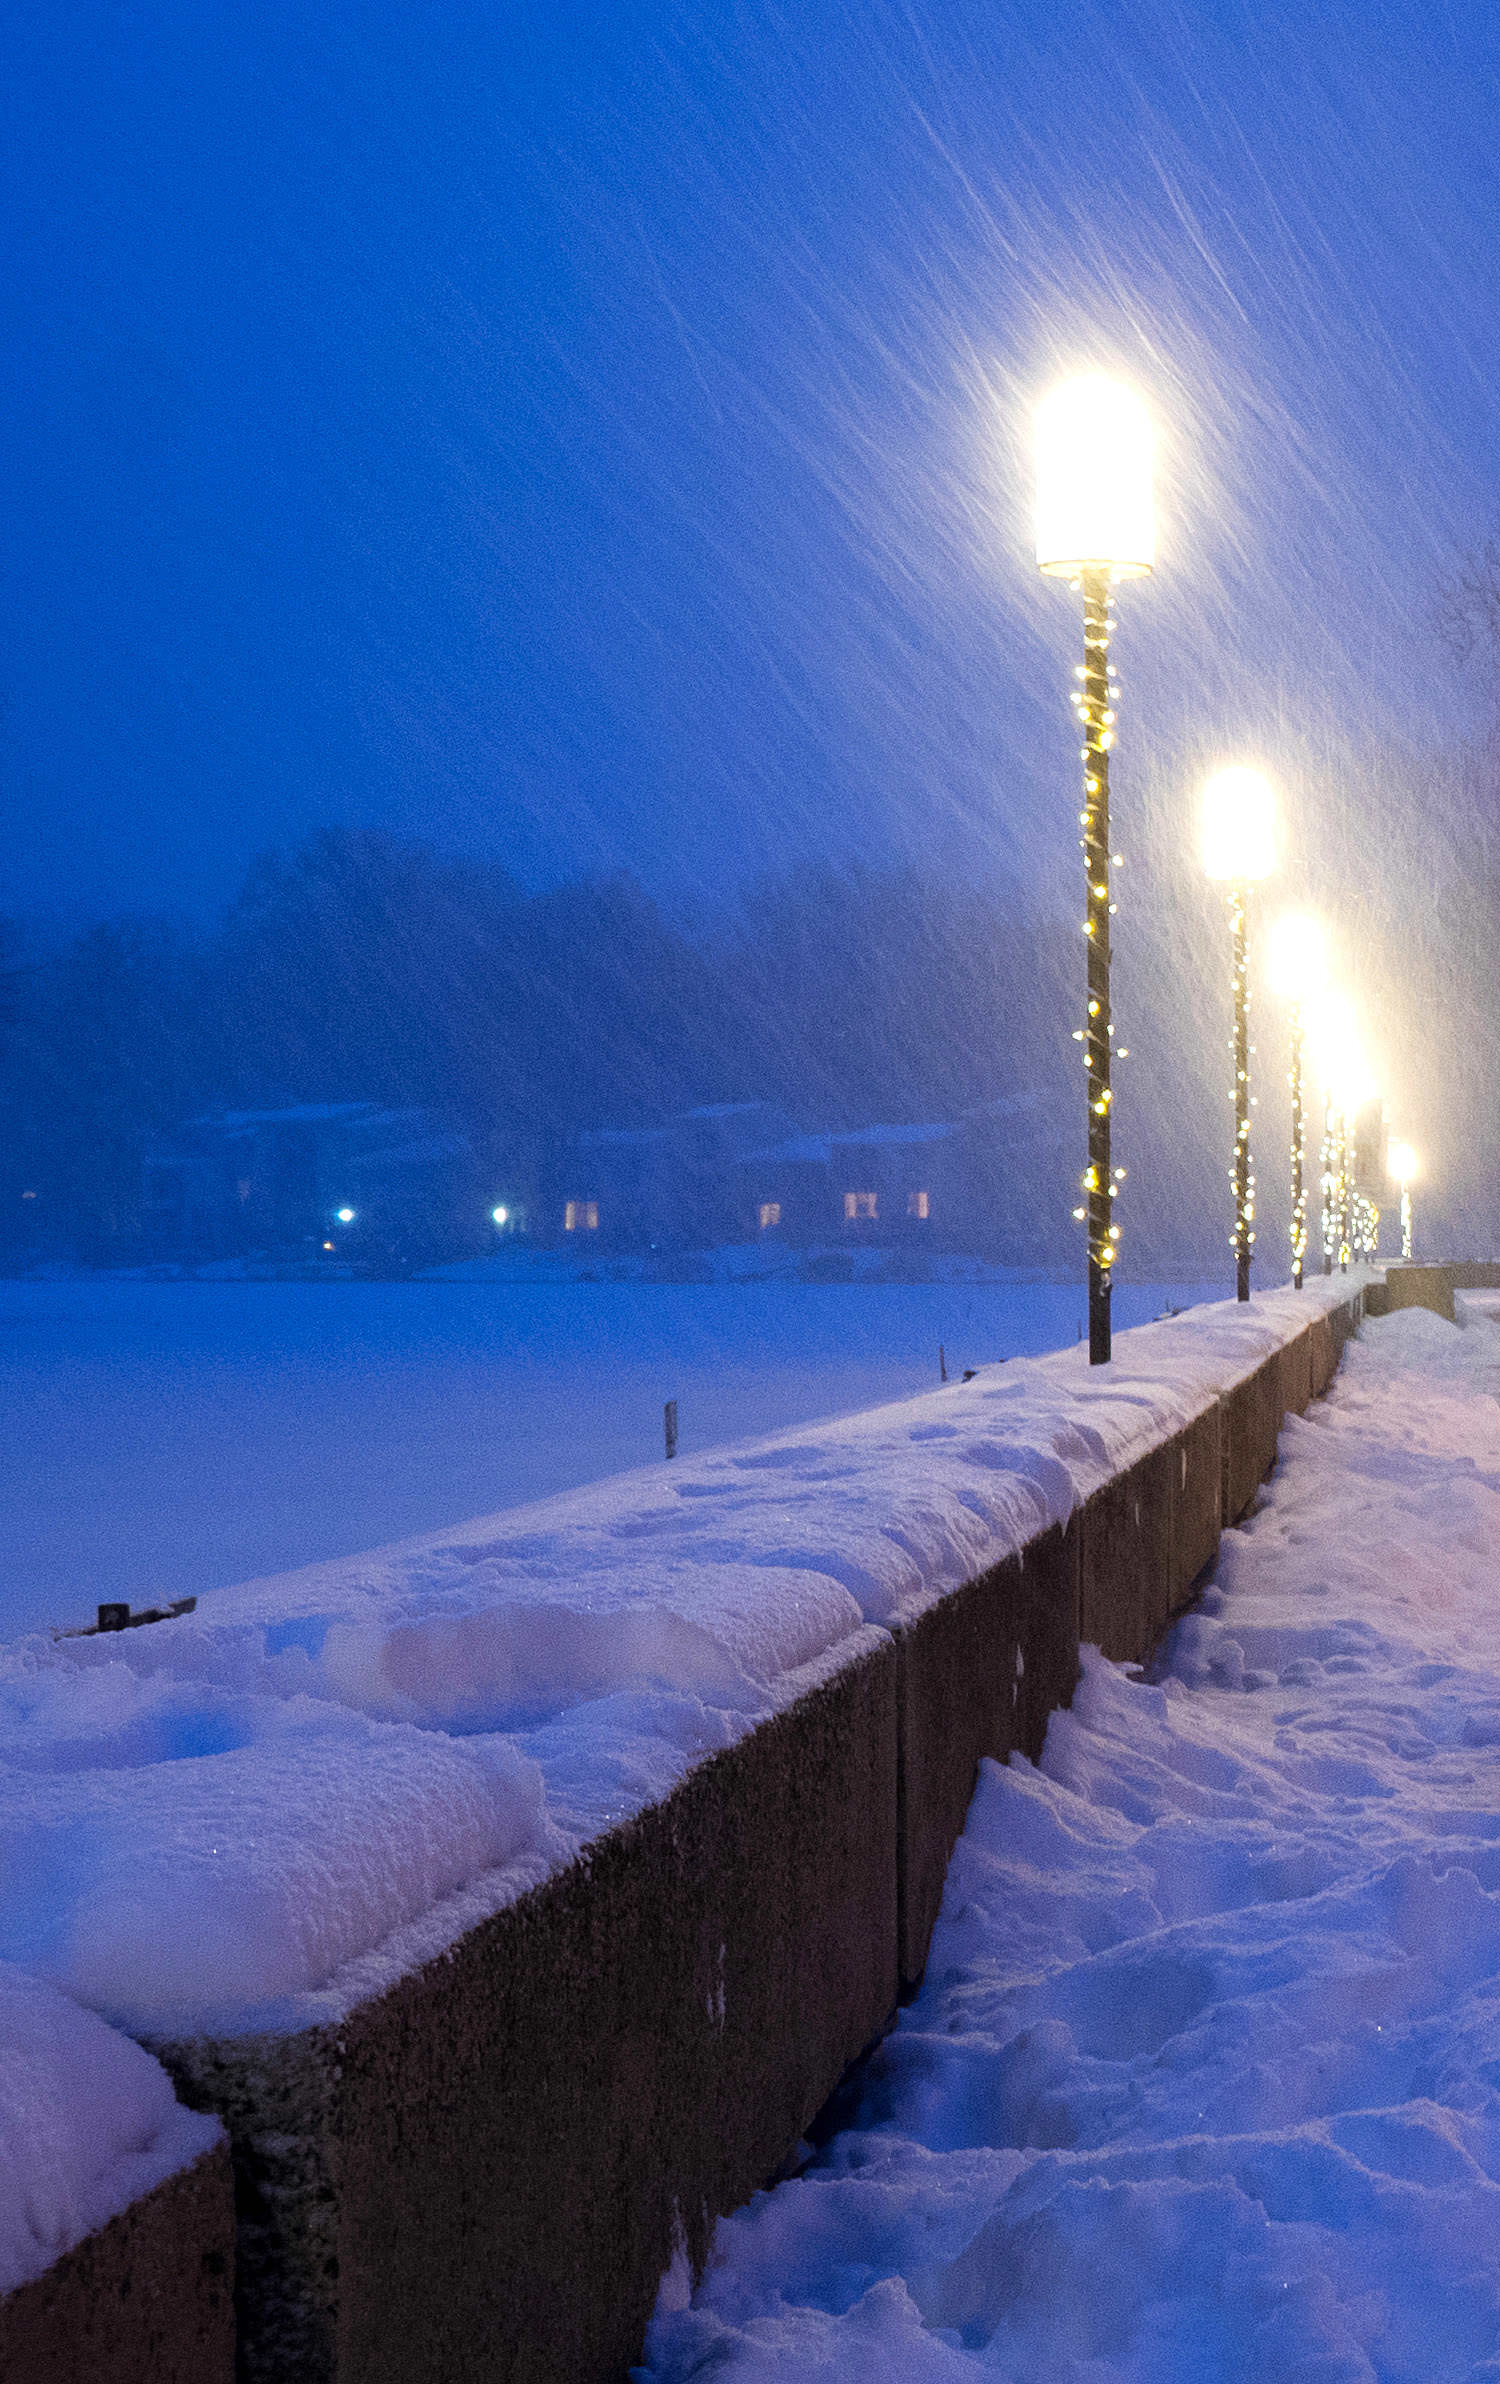 Lake Anne Plaza on a snowy night